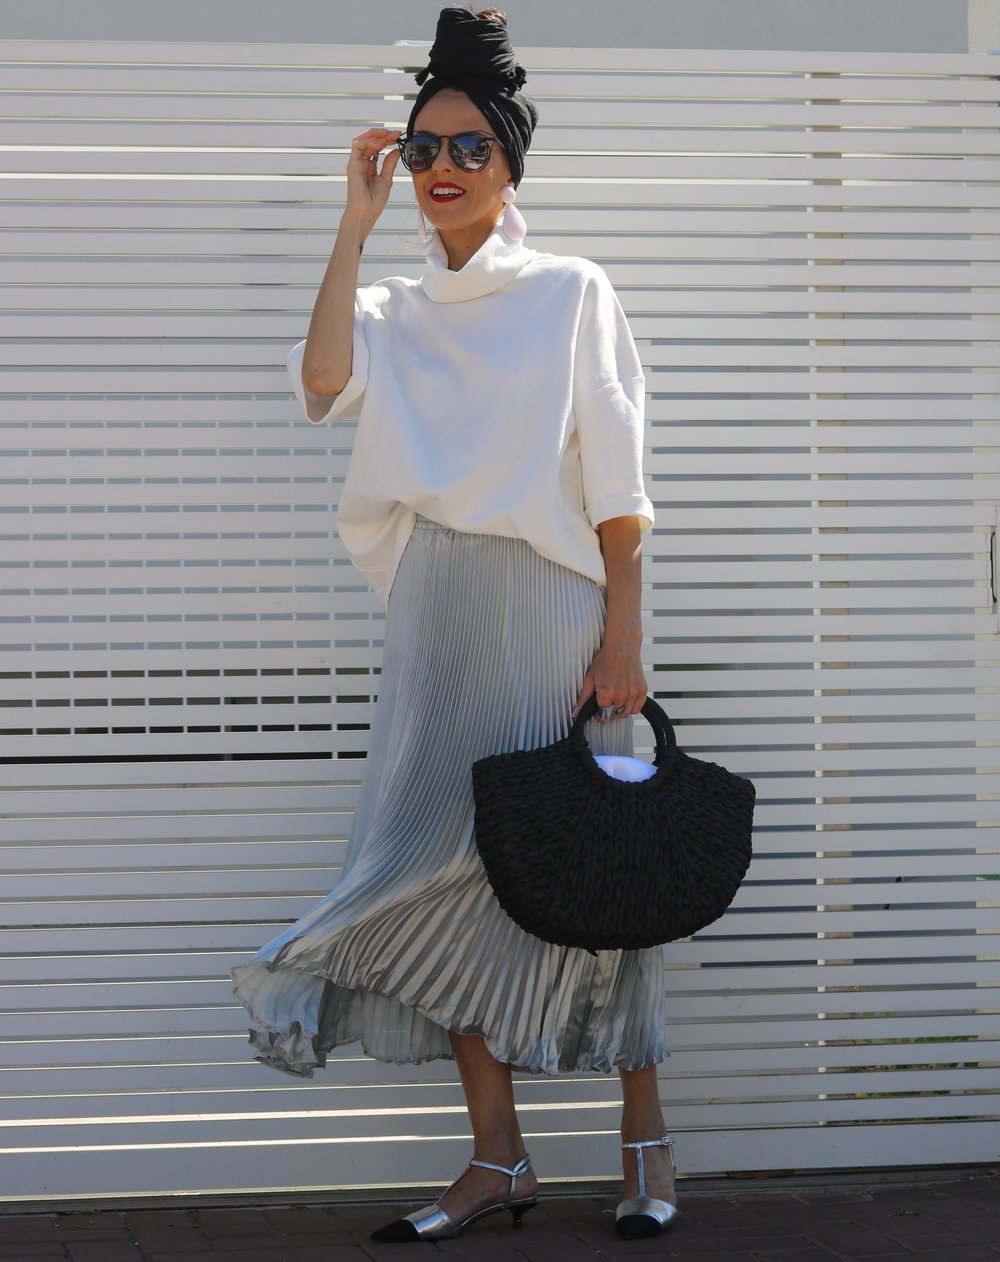 Top, Zara, Skirt, AliExpress, Shoes and Bag, both Zara, Sunglasses, Meirav's one, Earrings, Zara